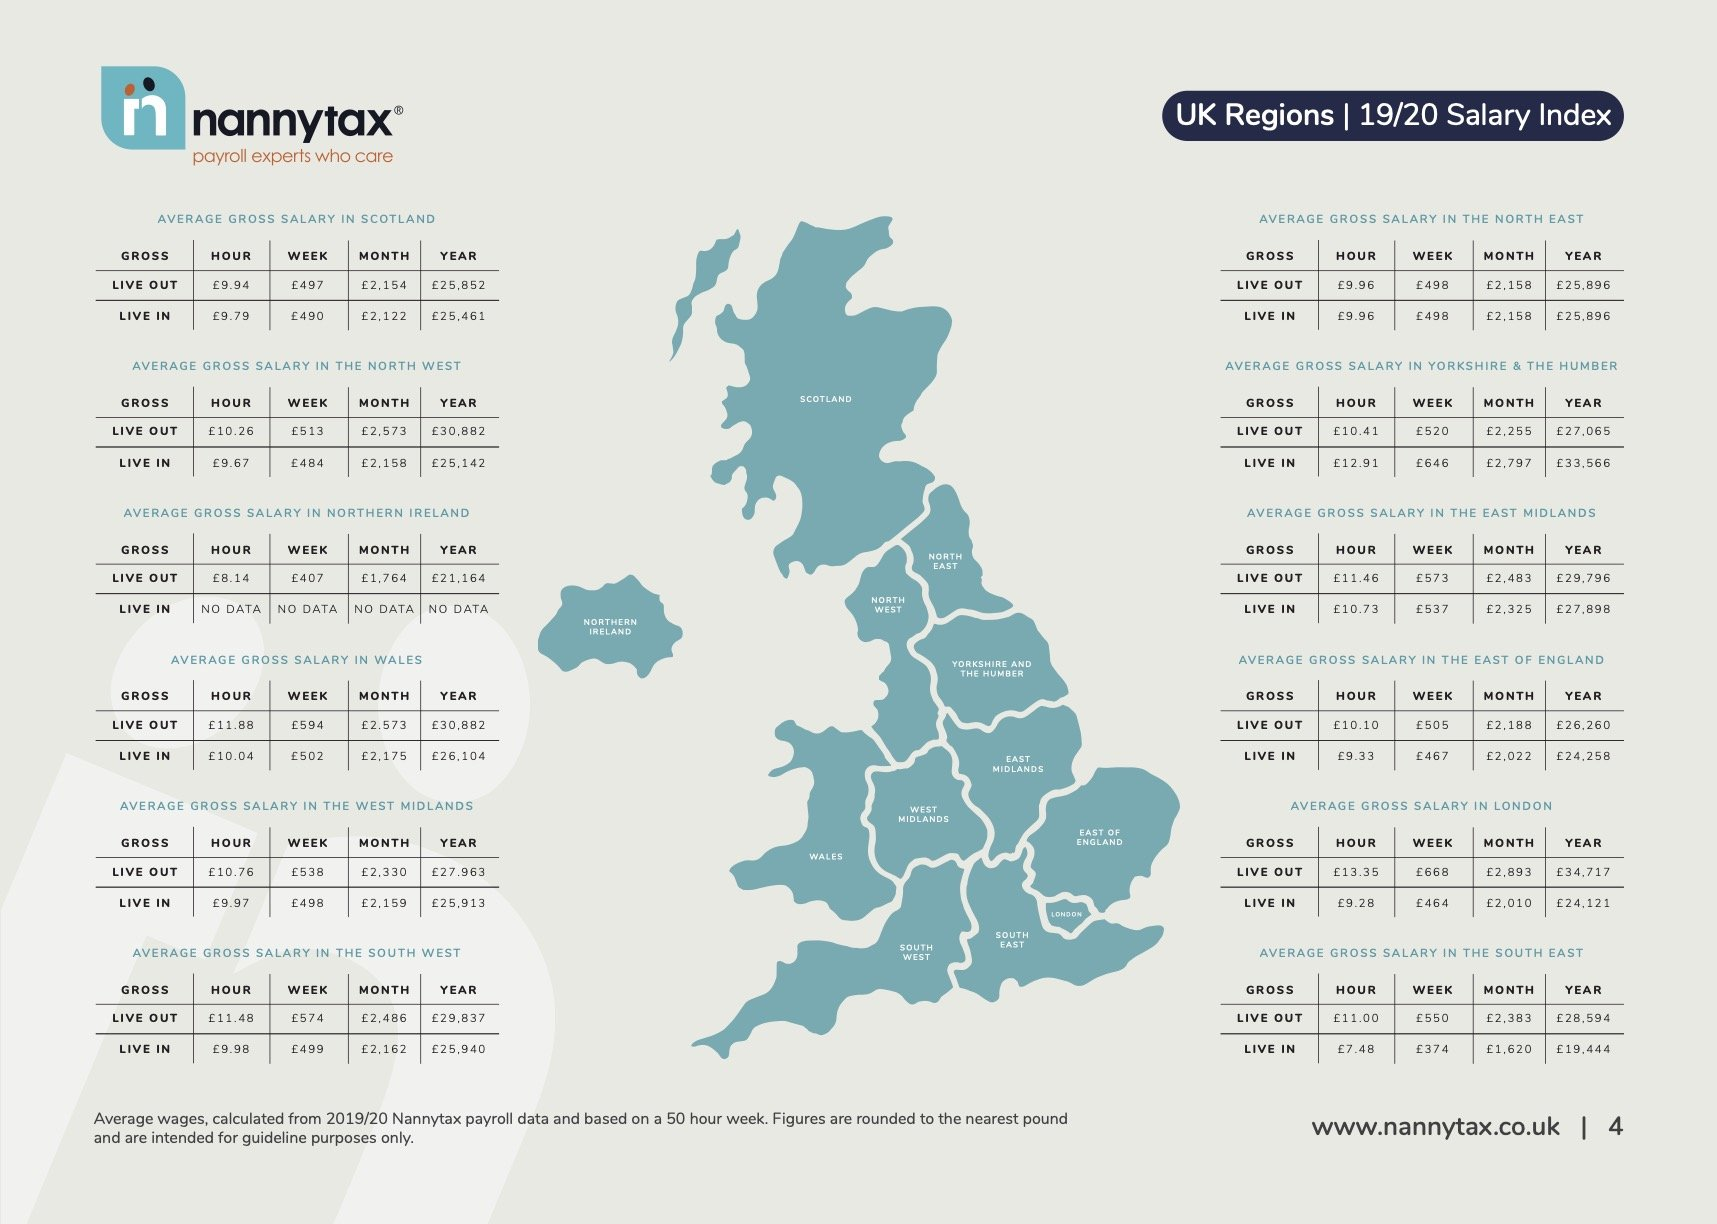 The average salary for a full-time nanny varies depending on where in the UK you live